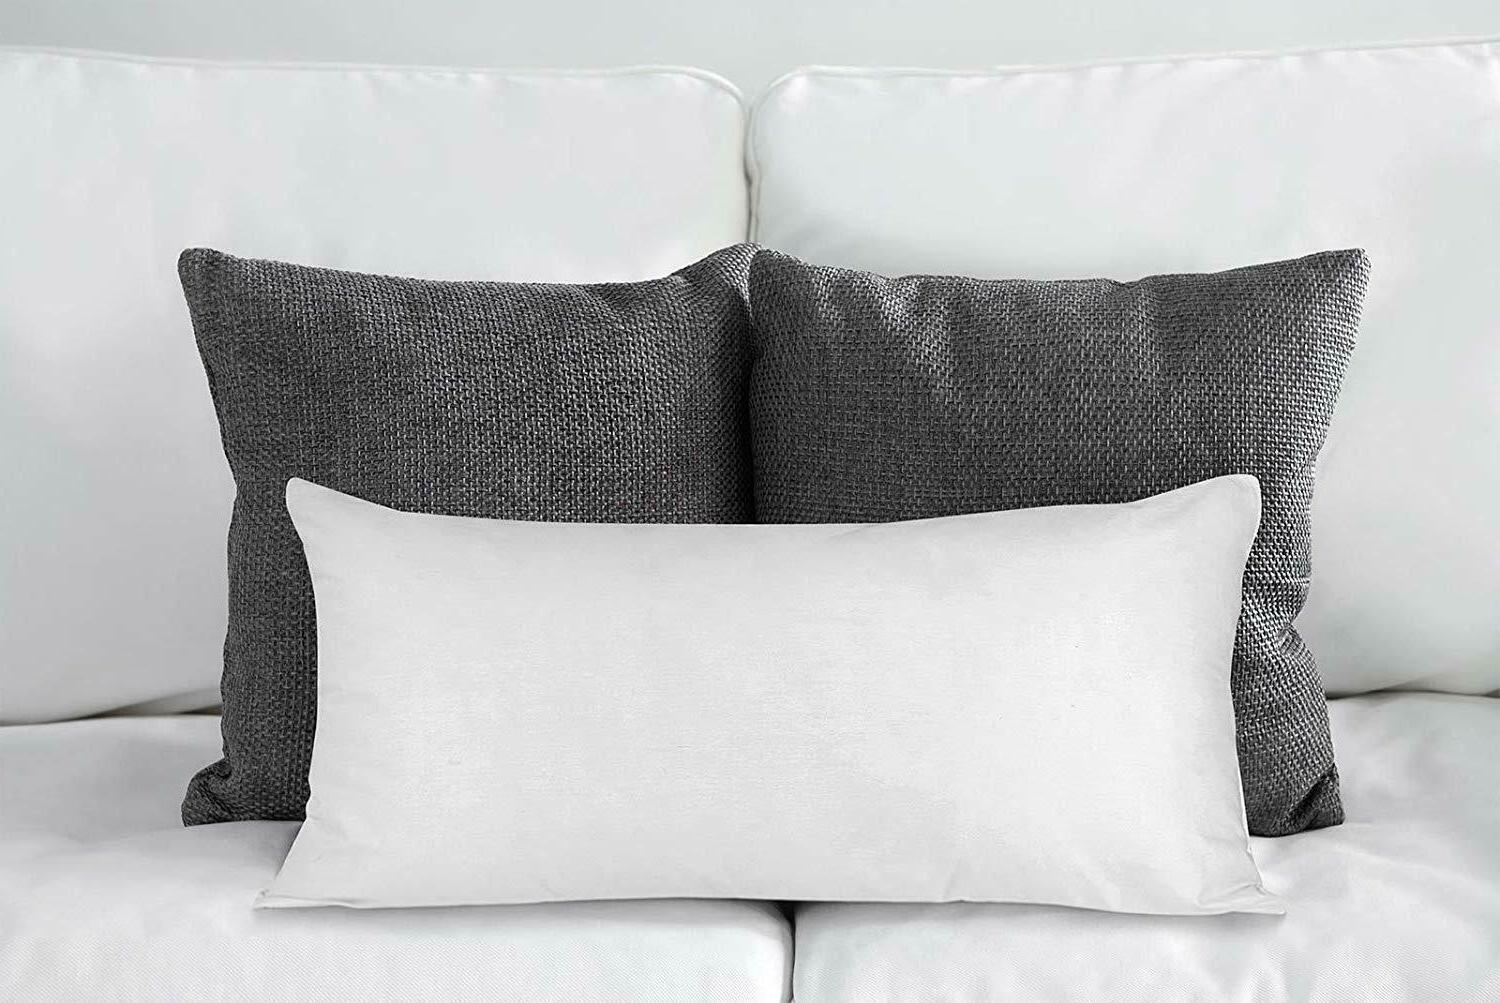 Decorative Pillows Insert of 2 Couch Pillows